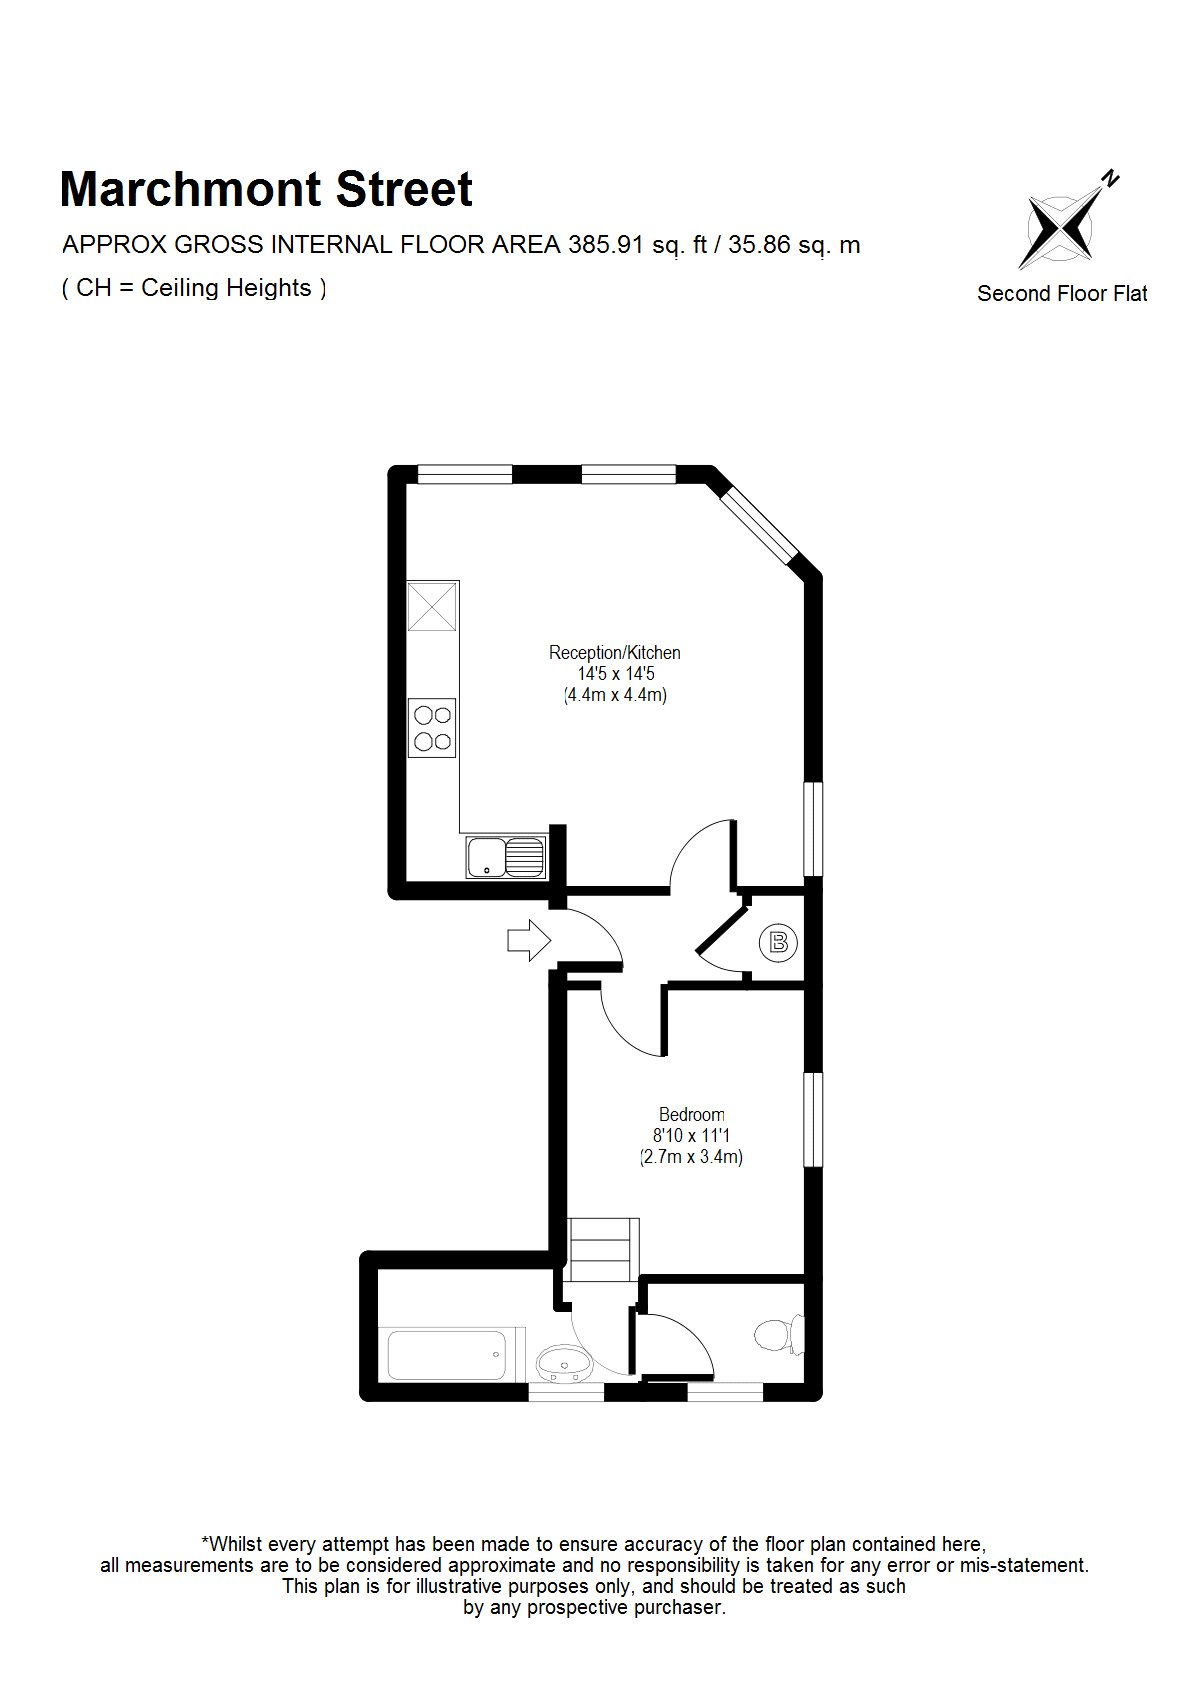 Property For Sale On Marchmont Street